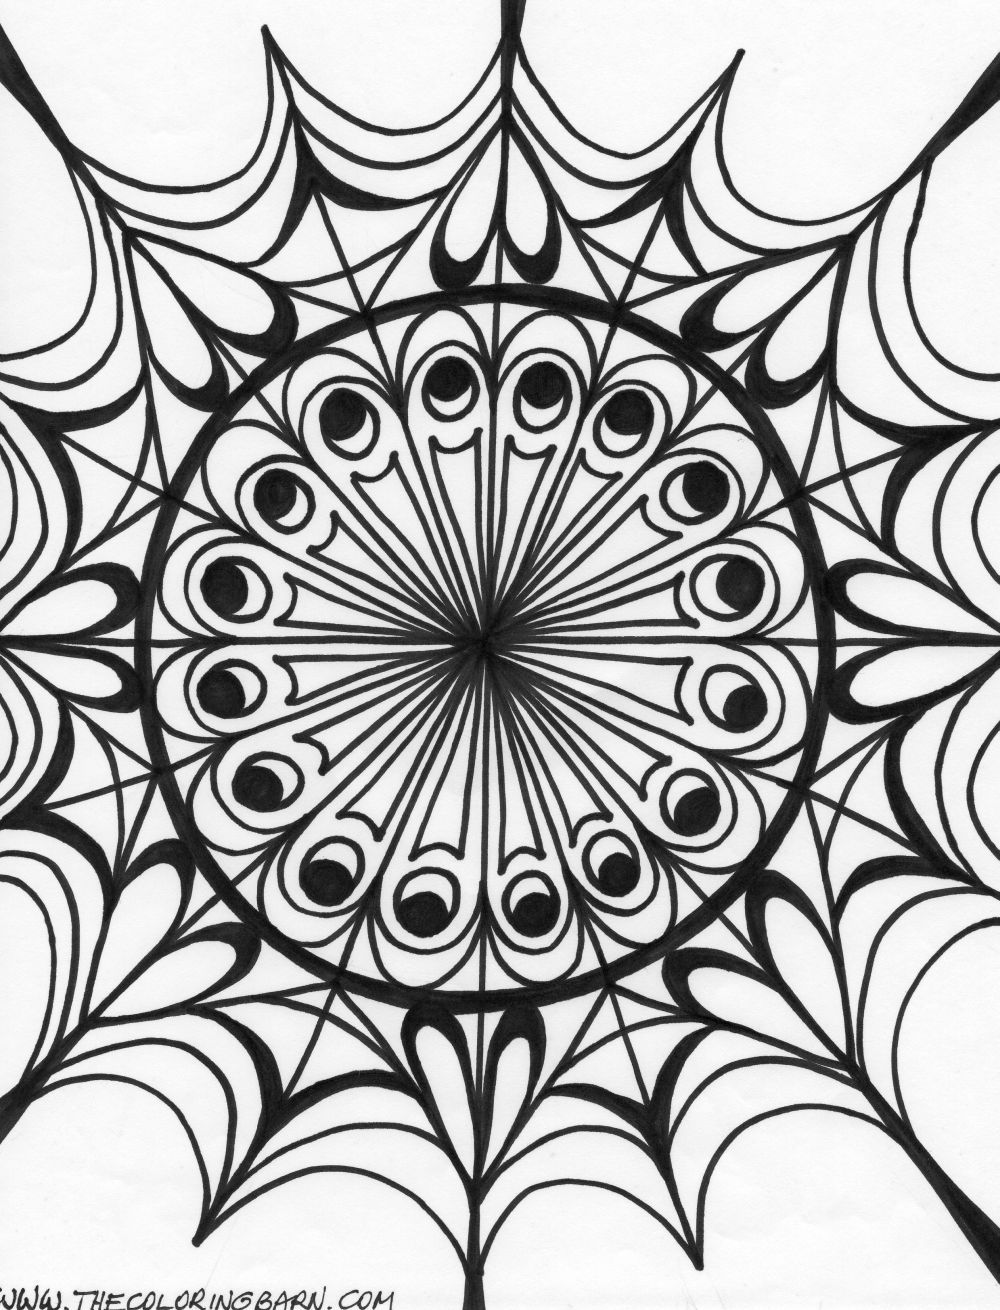 Free Printable Kaleidoscope Coloring Book Pages  Coloring pages